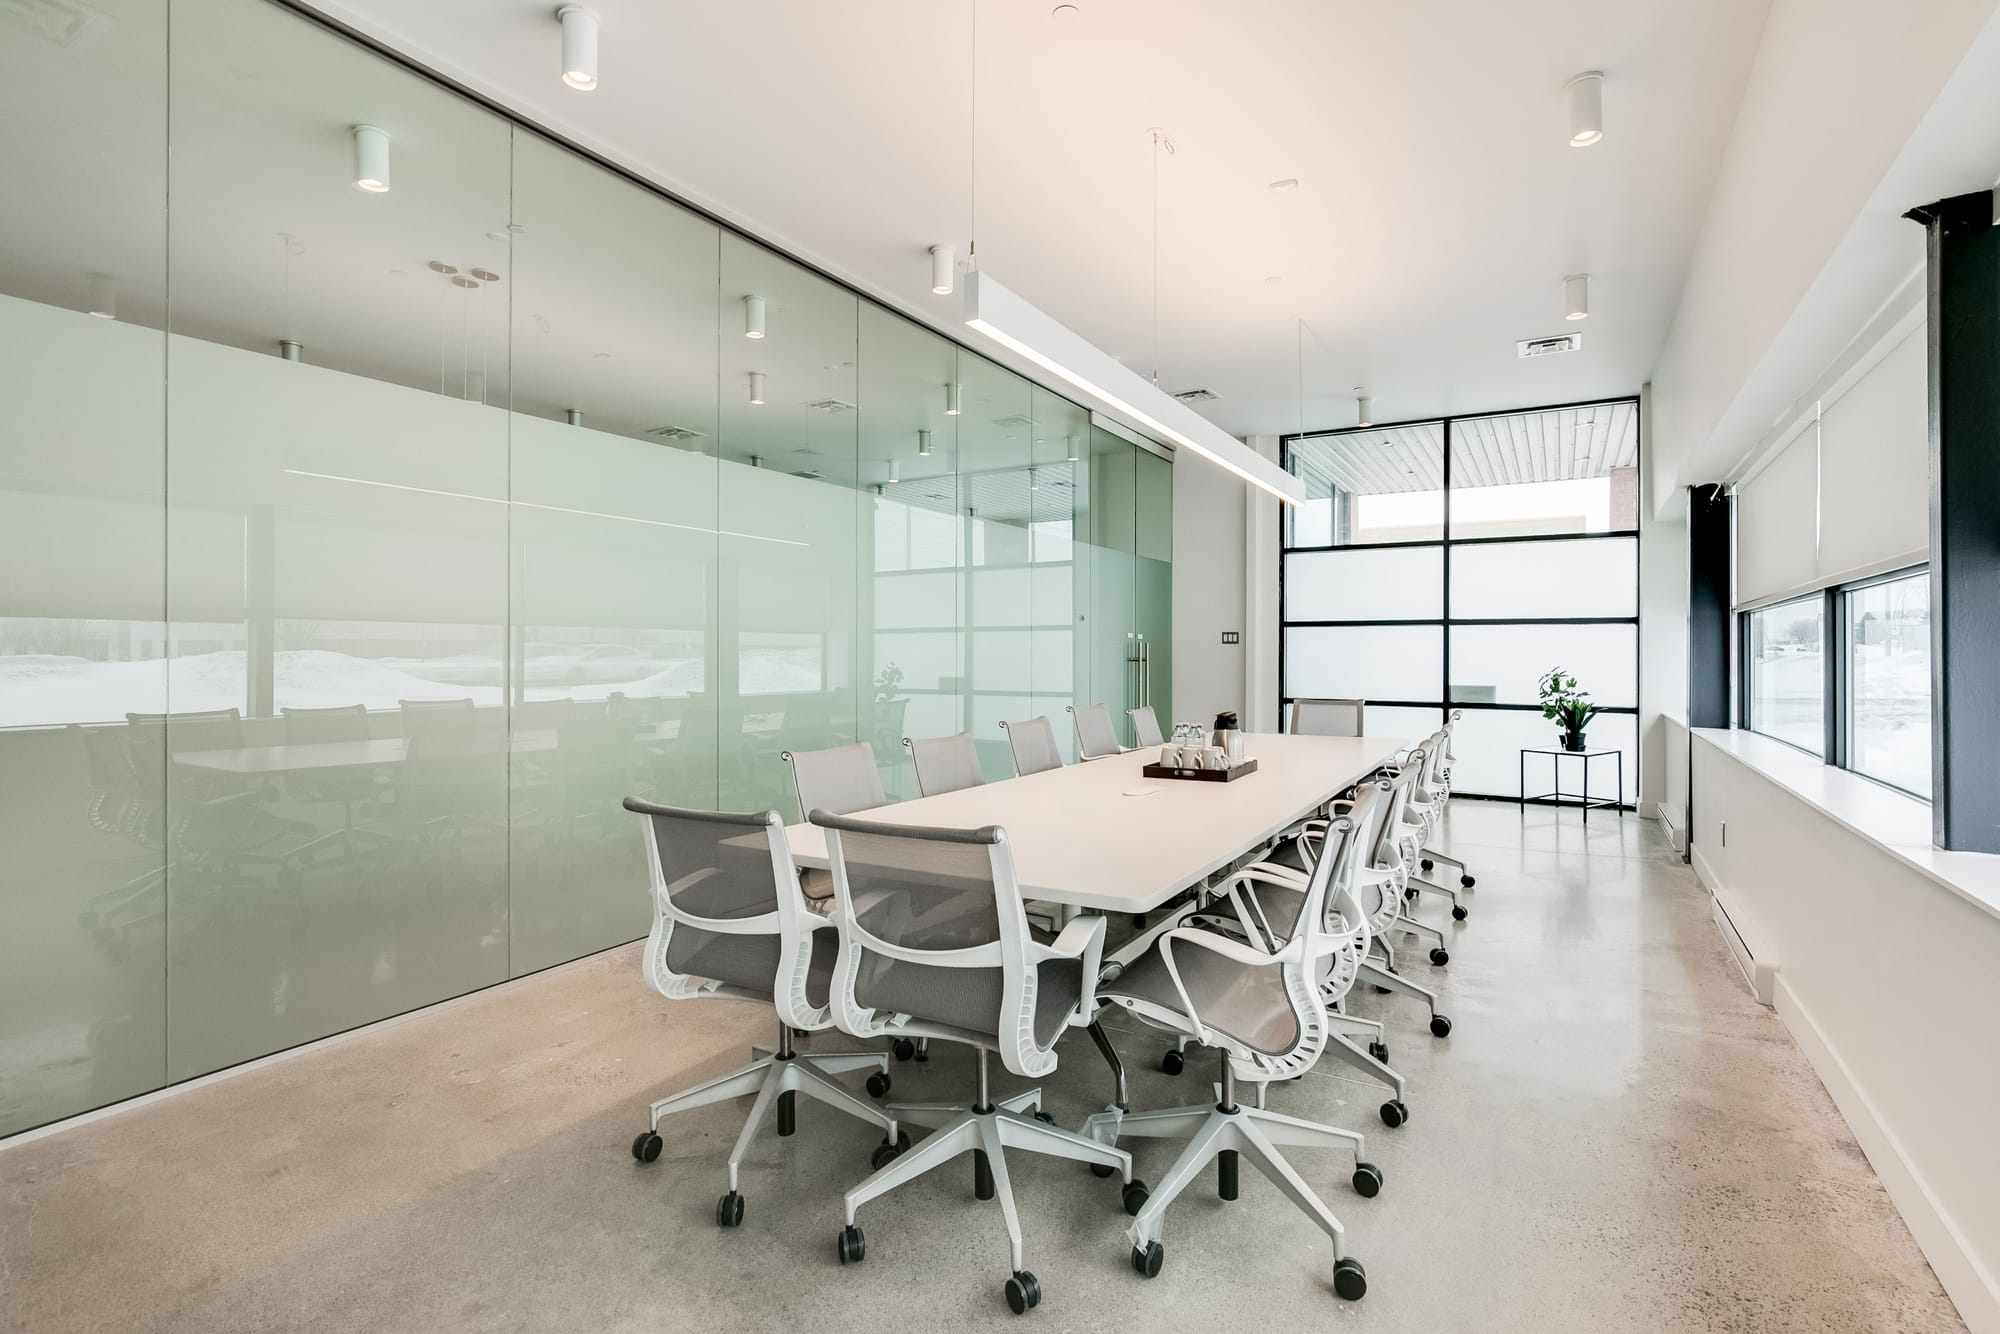 meeting room design with white table and chairs